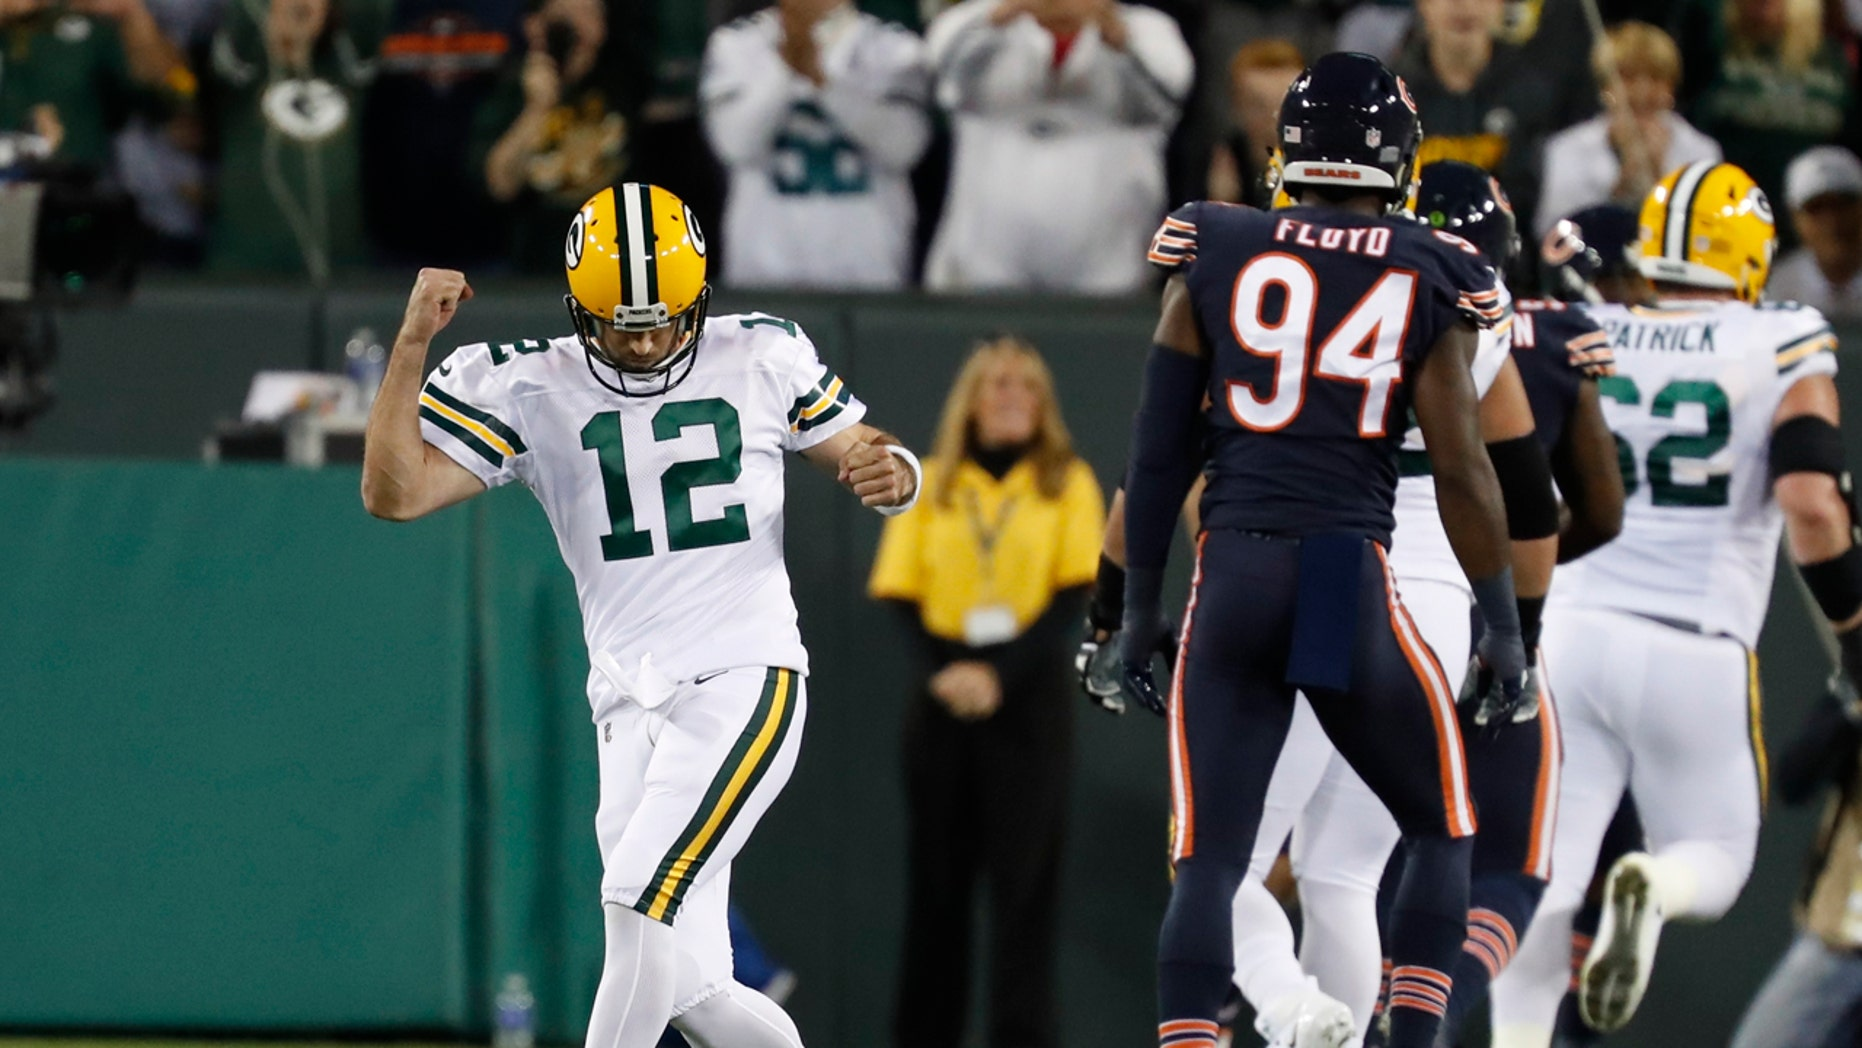 Green Bay Packers' Aaron Rodgers celebrates a touchdown pass during the first half of an NFL football game against the Chicago Bears Thursday, Sept. 28, 2017, in Green Bay, Wis. (AP Photo/Matt Ludtke)